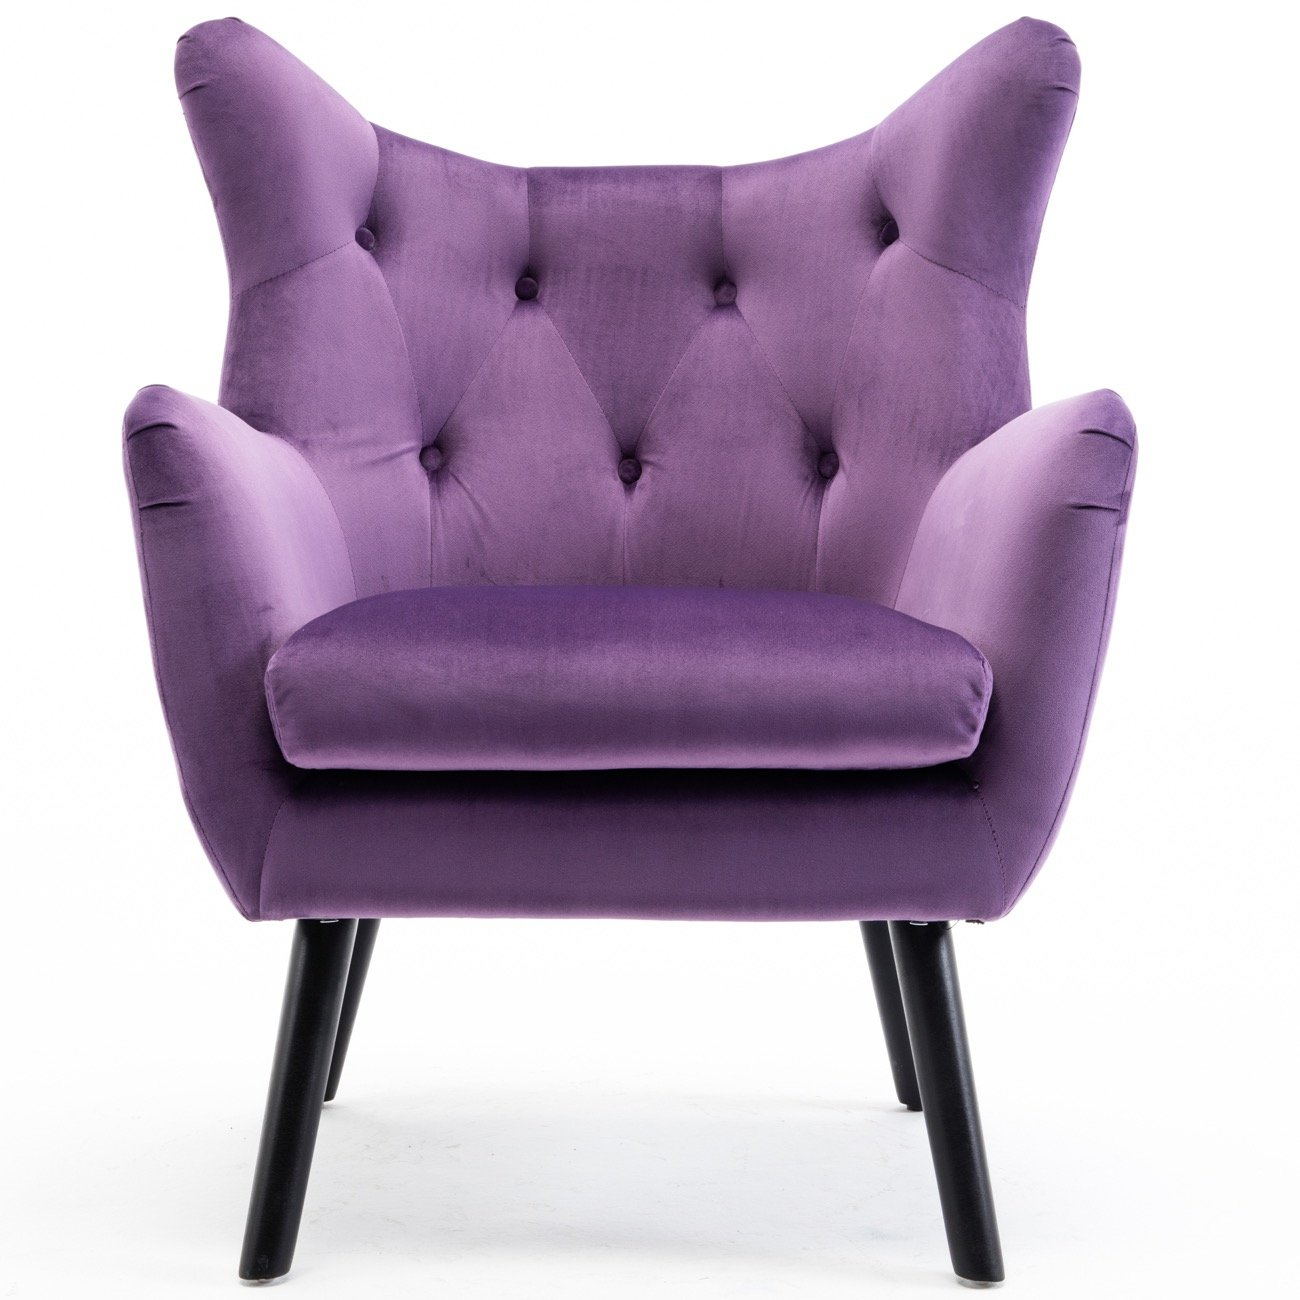 Belleze Accented Wing Back Mid Century Button Tufted Chair Wood Leg Polyester Upholstered Living Room Arm Chair Purple